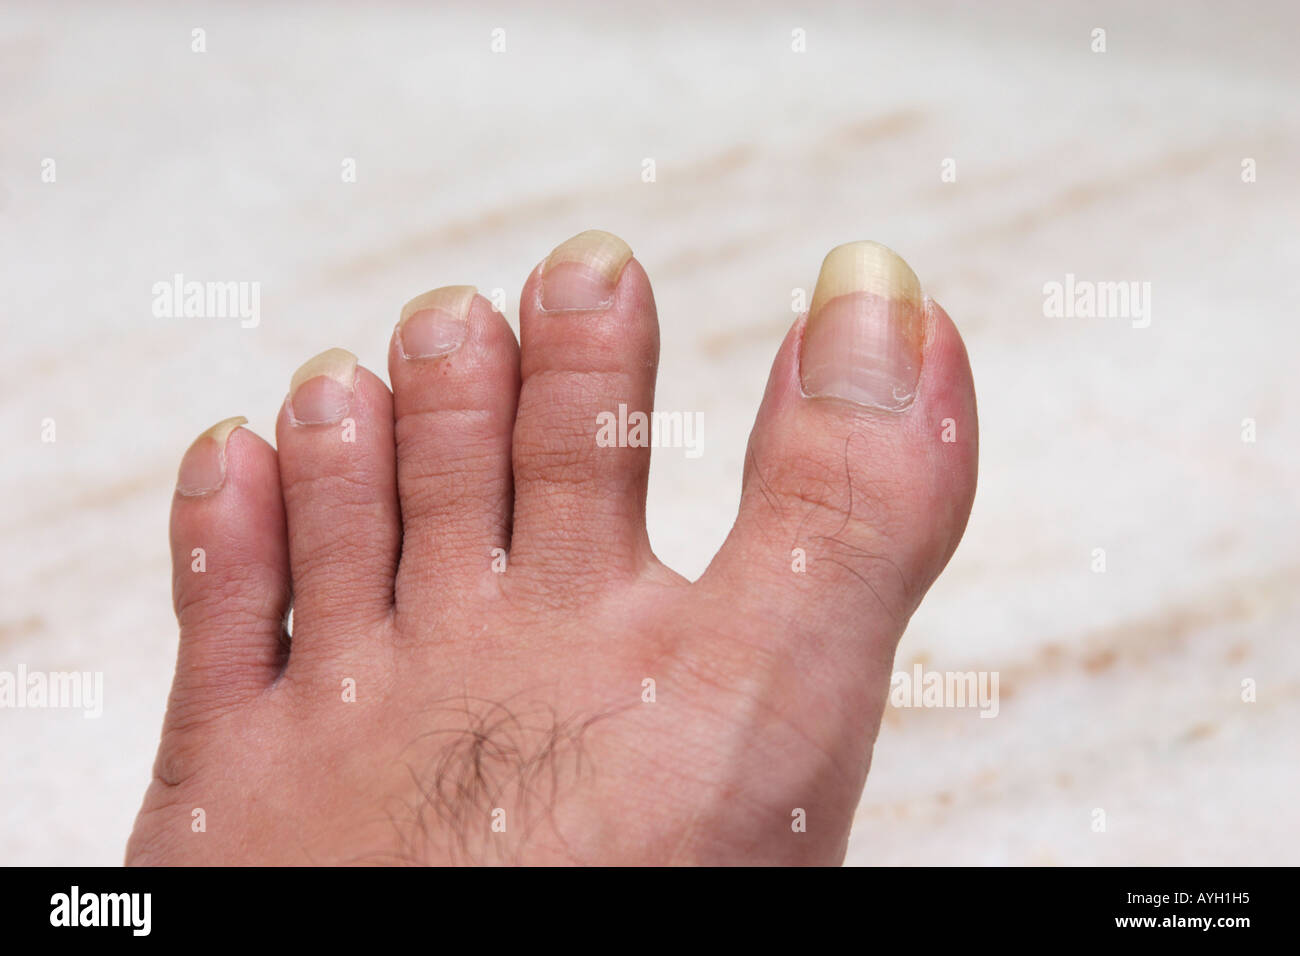 long toe nails Stock Photo: 9775572 - Alamy